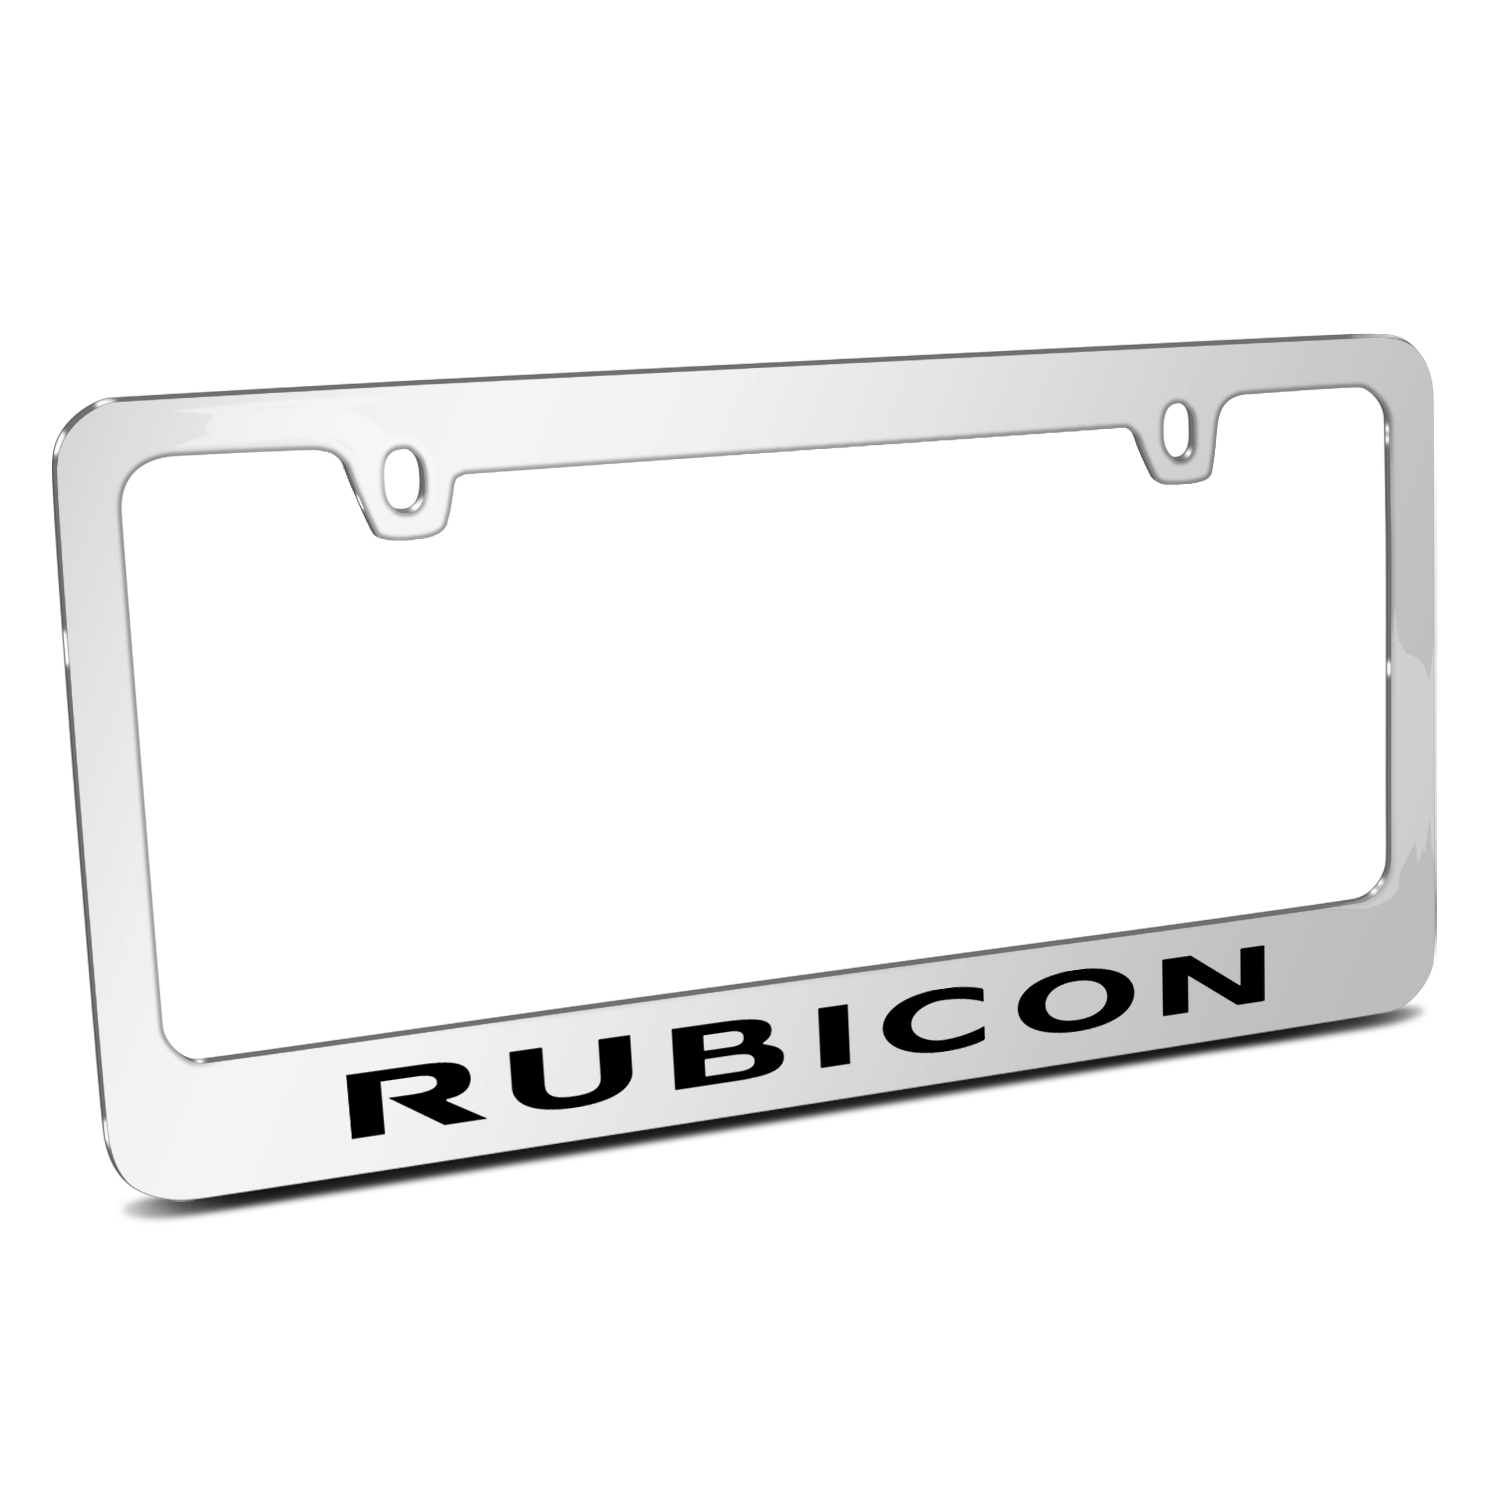 Jeep Rubicon Mirror Chrome Metal License Plate Frame